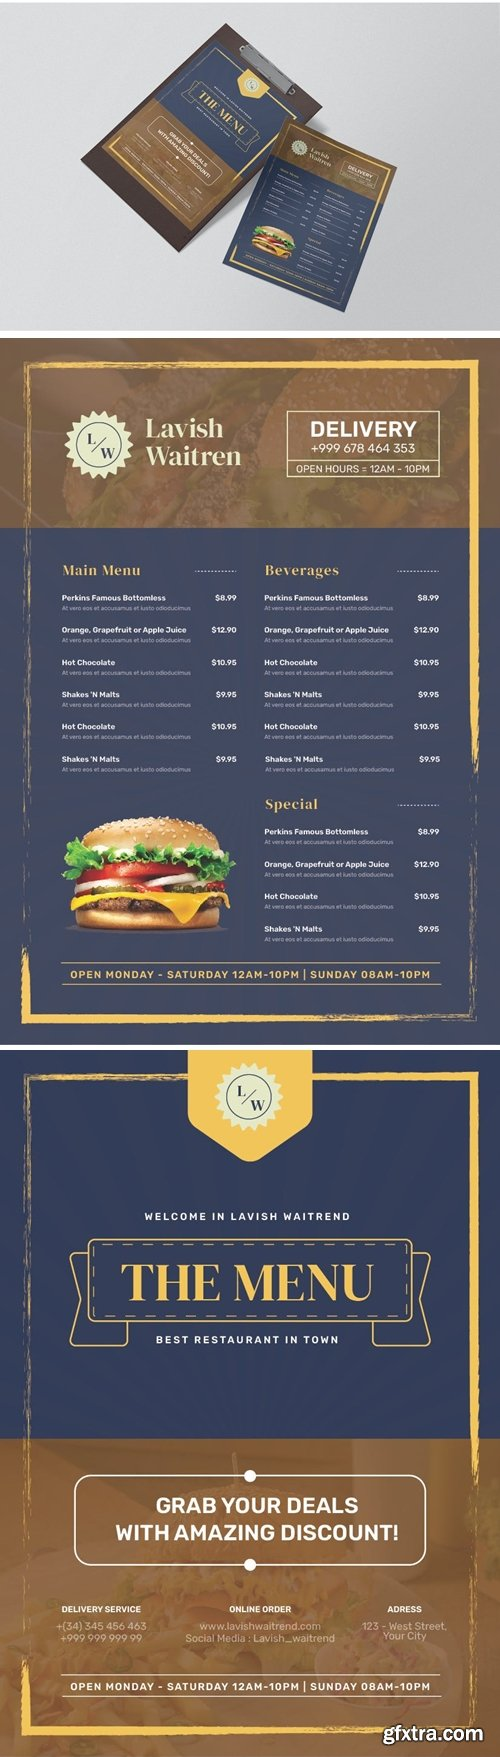 Lavist Waitrend Restaurant Menu